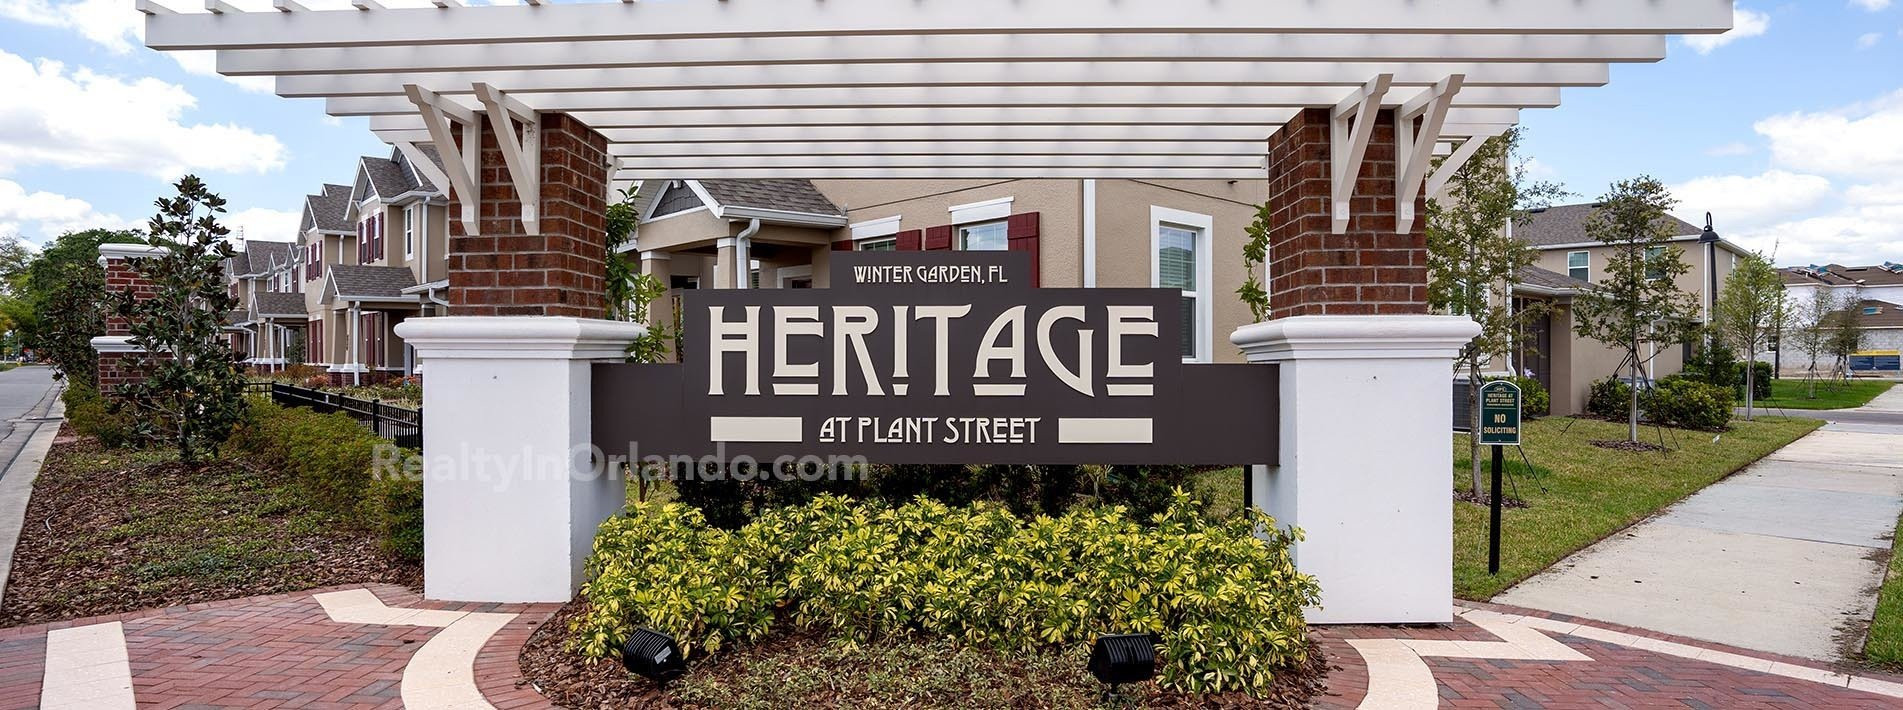 Heritage at Plant Street Winter Garden Real Estate